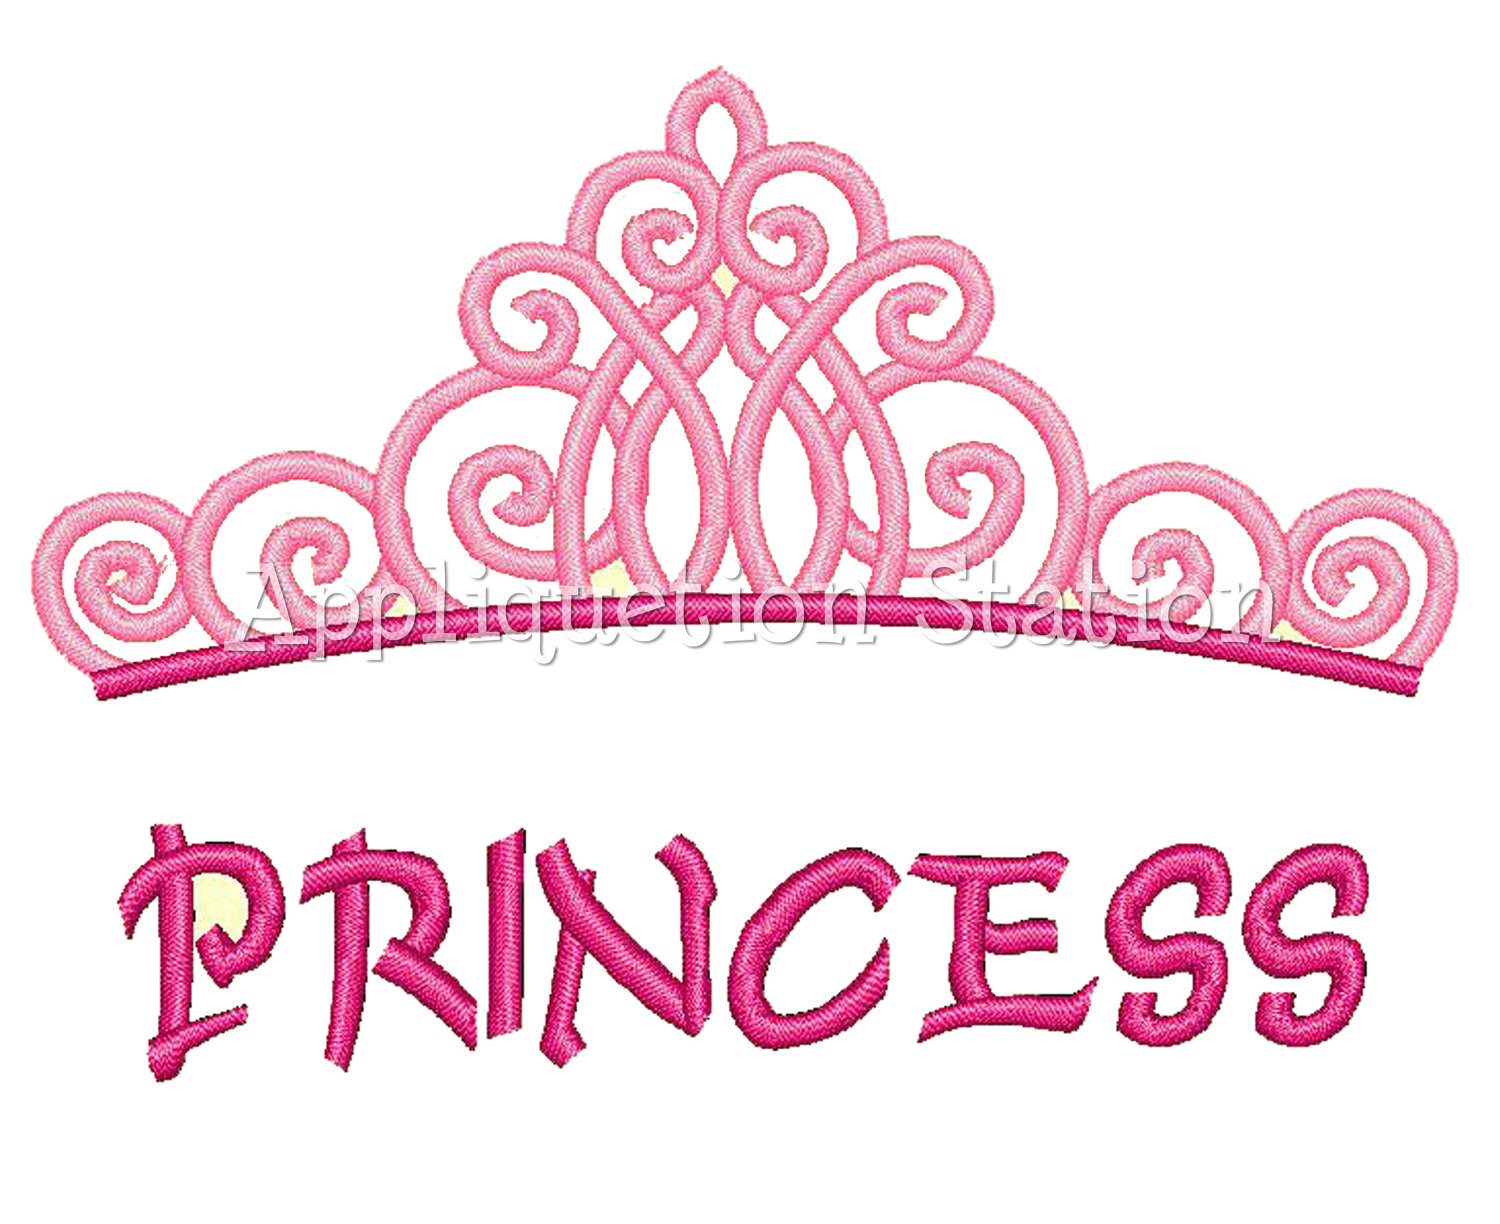 Tiaras And Crowns Clip Art Images Thecel-Tiaras And Crowns Clip Art Images Thecelebritypix-16